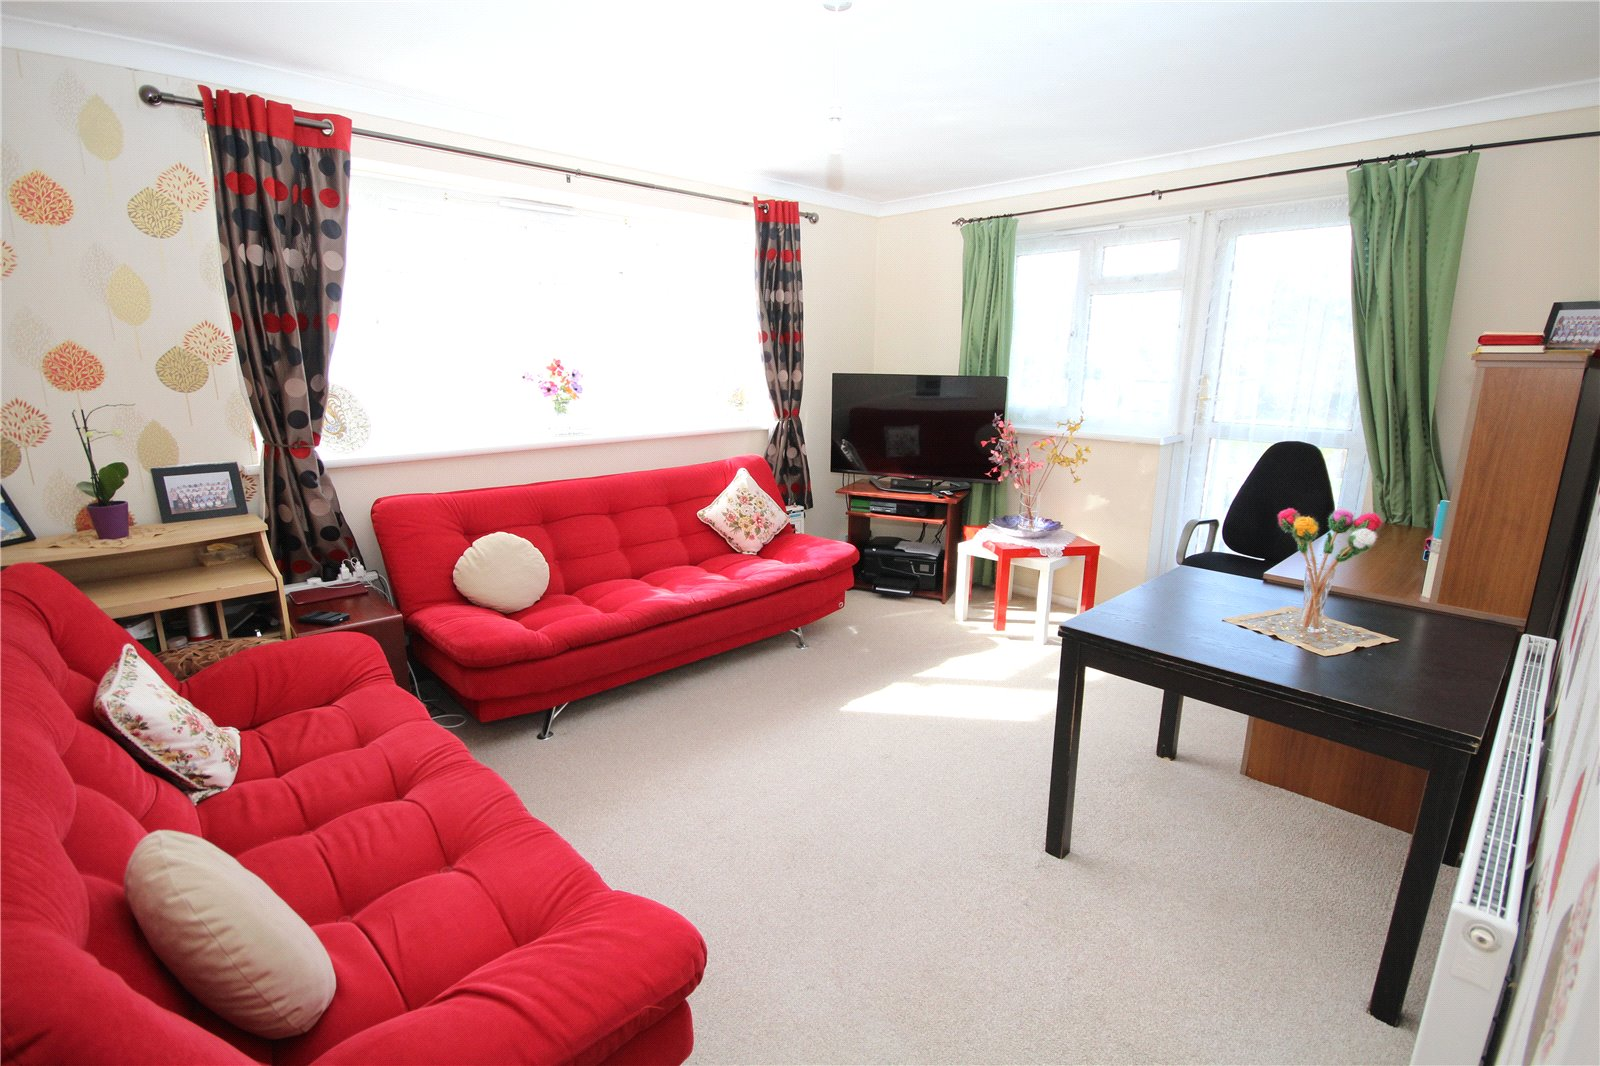 Upper Wickham Lane, Welling, Kent, DA16